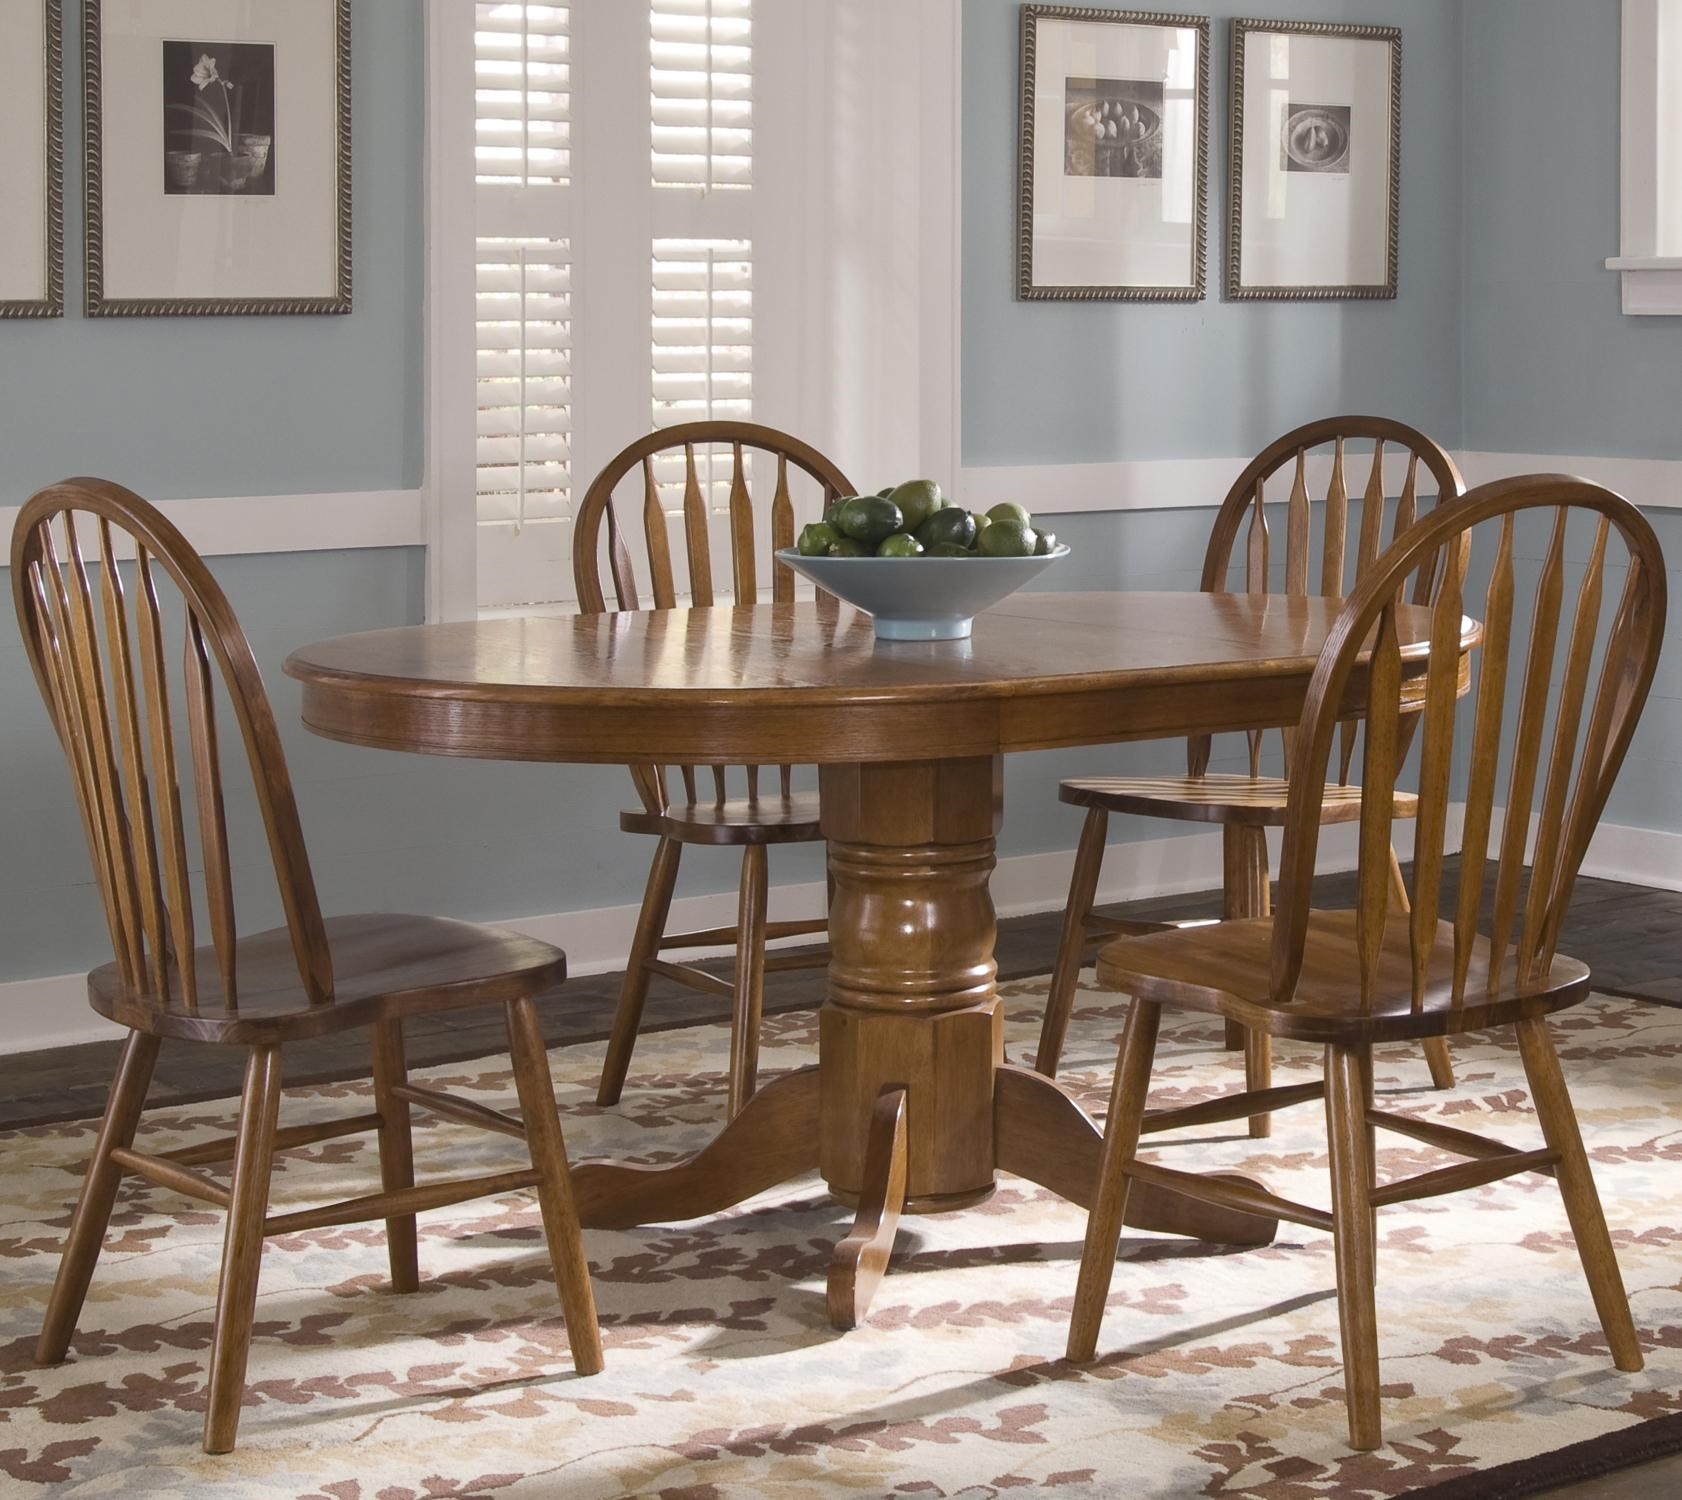 Liberty Furniture Nostalgia Oval Pedestal Dinner Table W/ 4 Windsor Side  Chairs